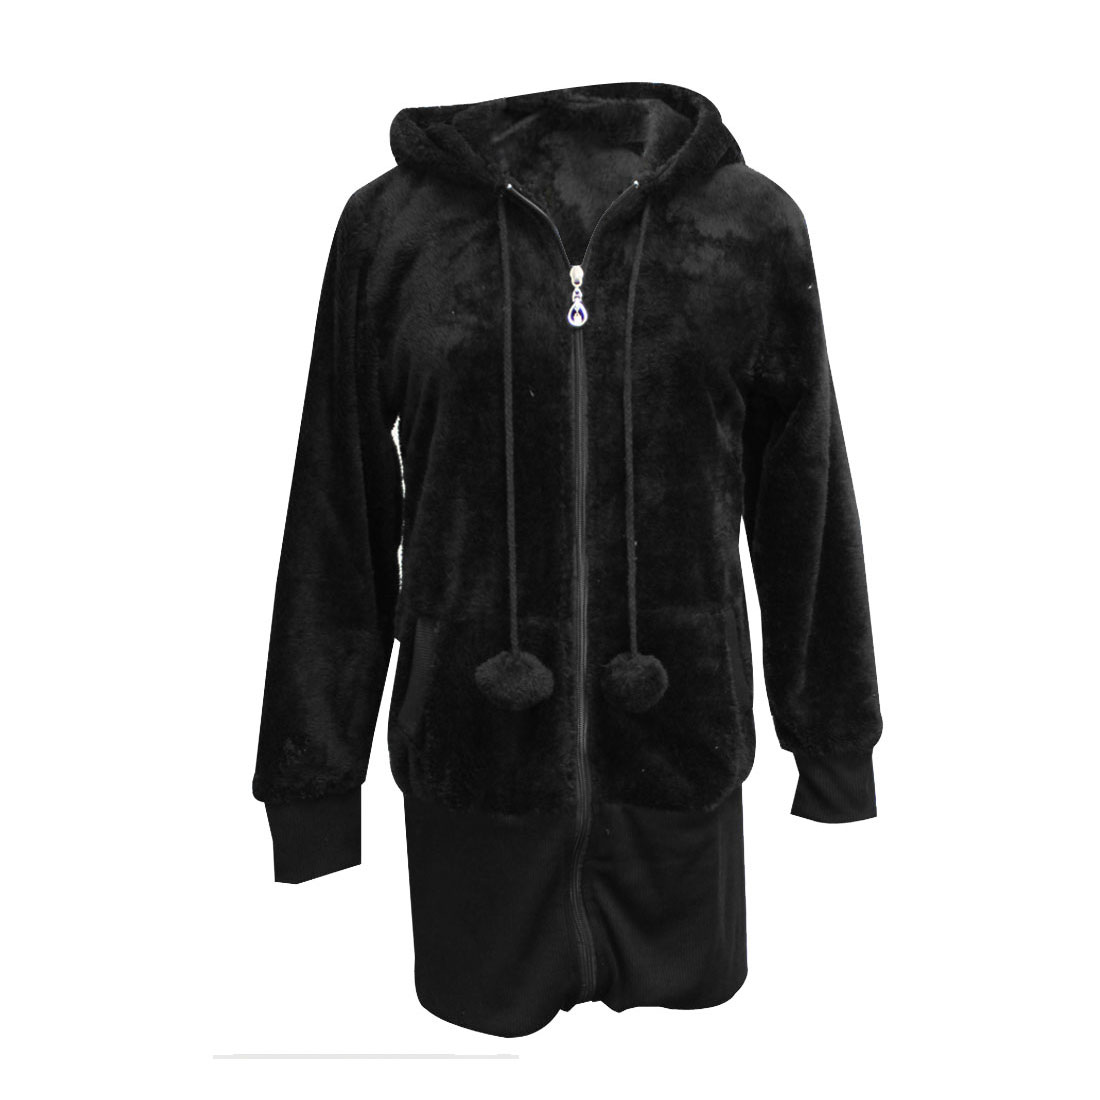 Ladies Pom-Pom Zip Up Paneled Tunic Plush Hooded Coat Black XS